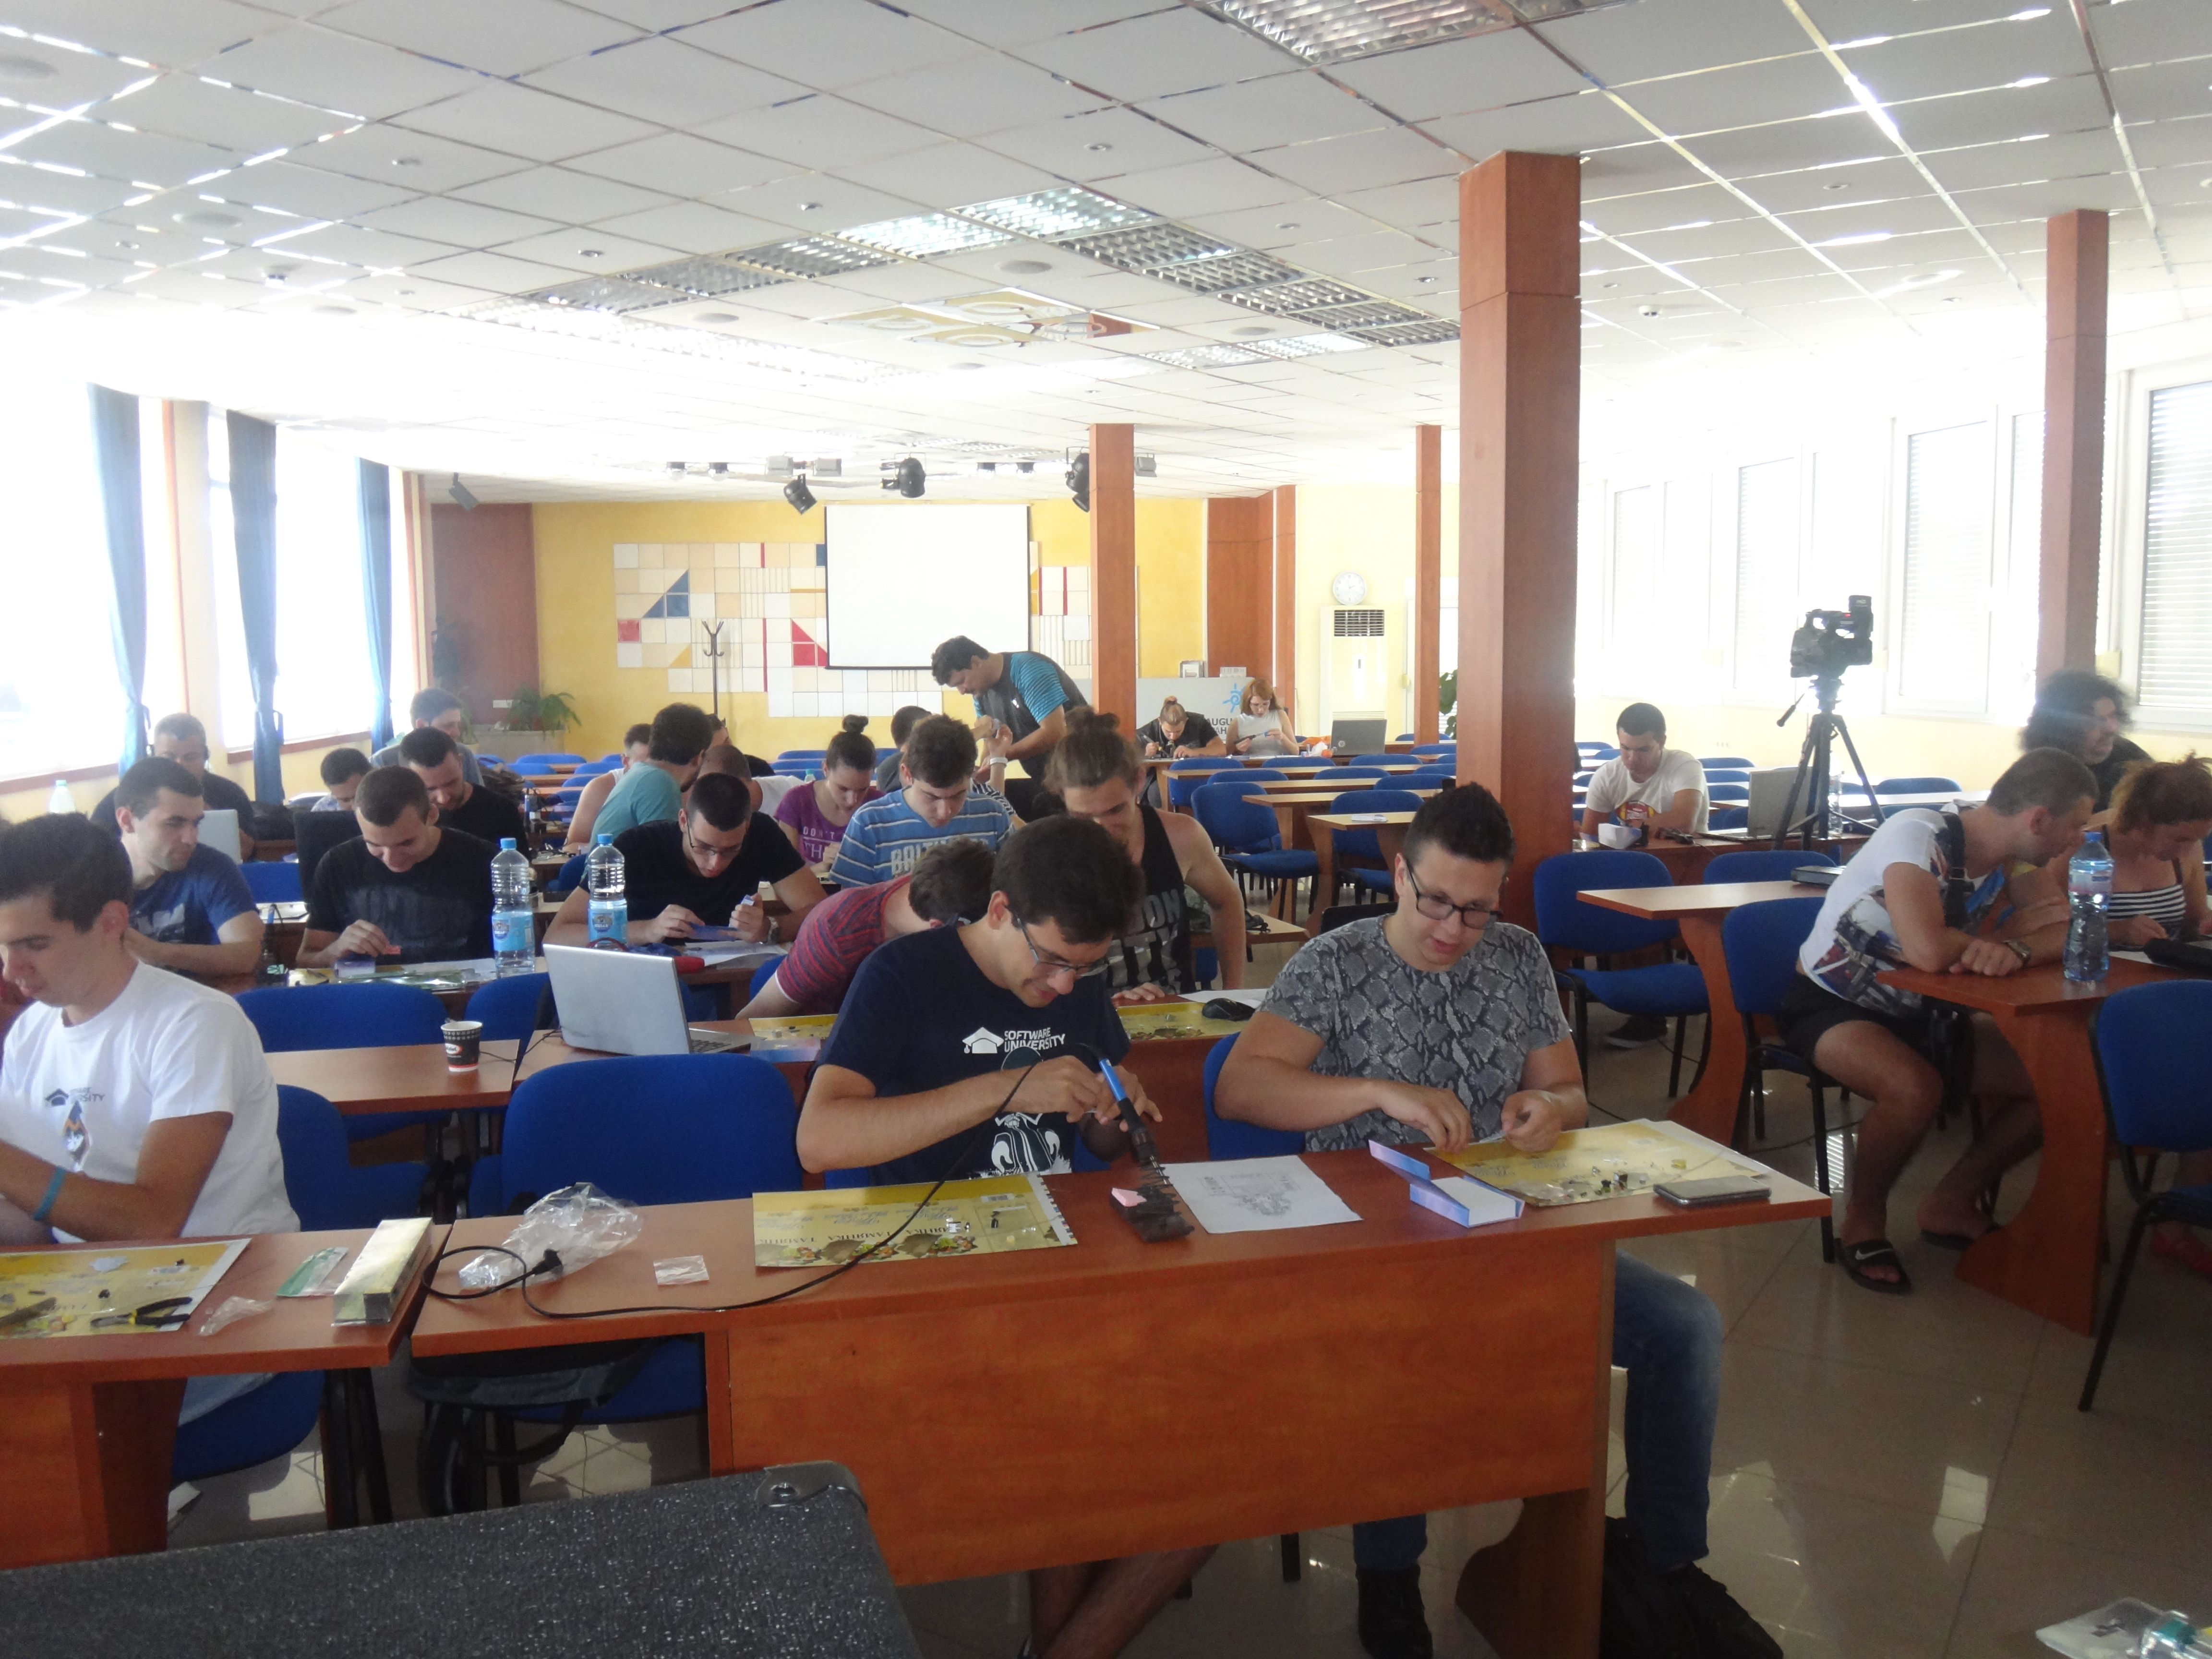 SoftUni camp Soldering workshop – 17th of August in Hisarrya